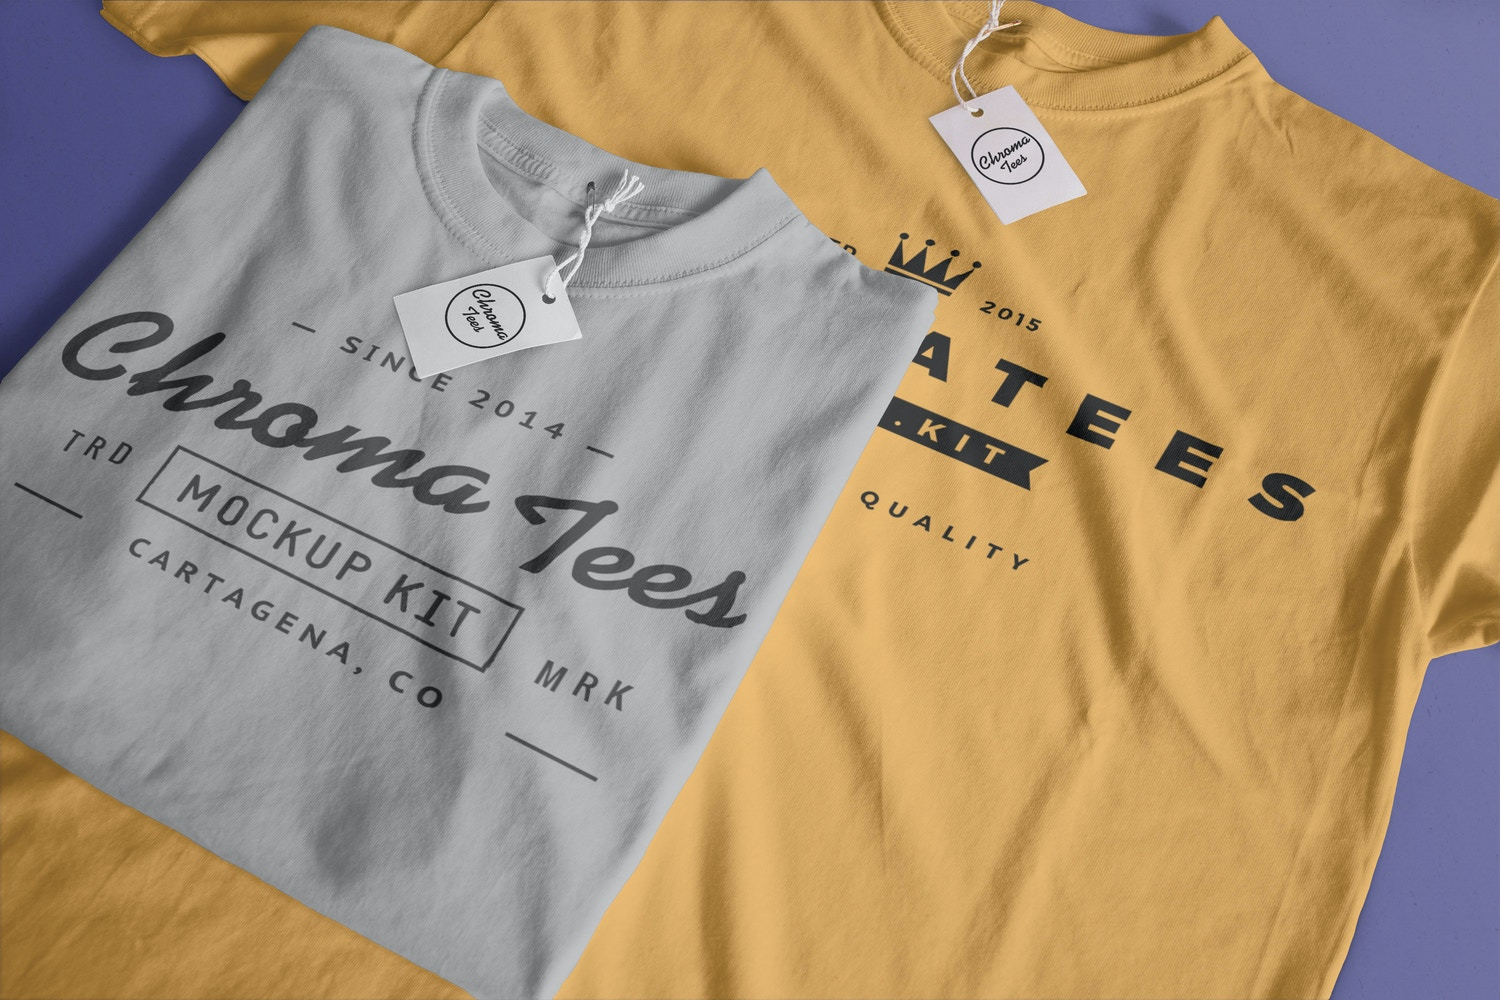 T-Shirts Mockup 01 by Antonio Padilla on Original Mockups